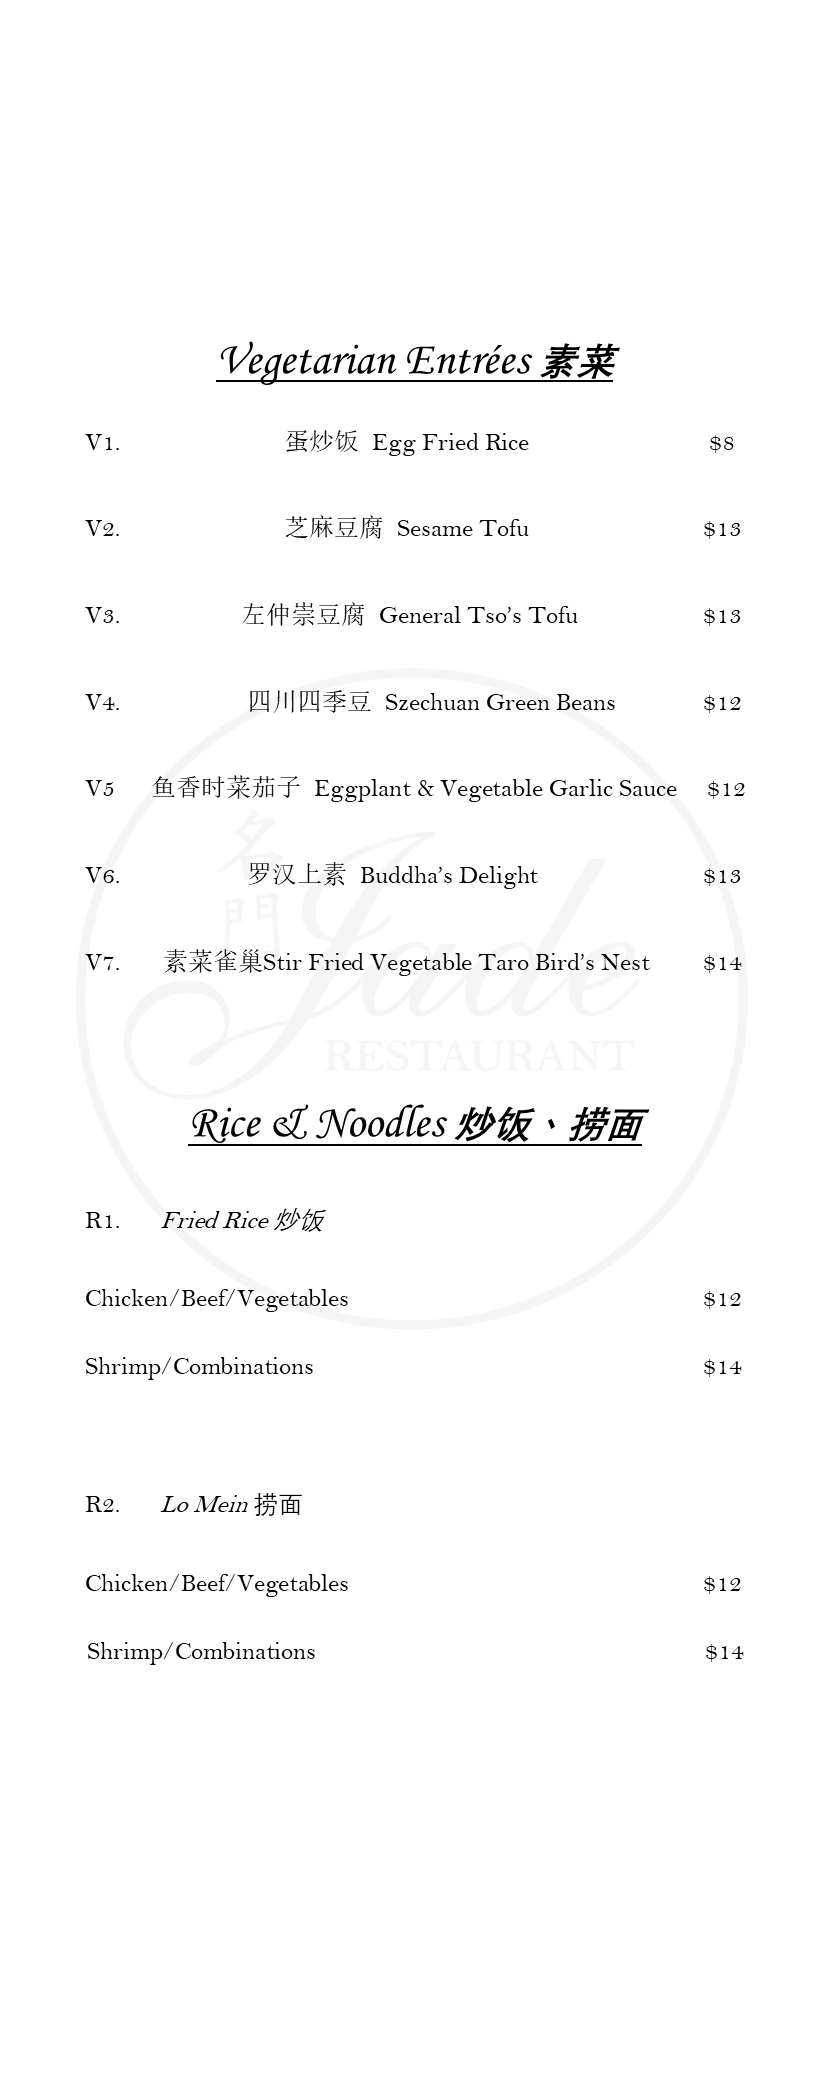 image-761105-Rice.png